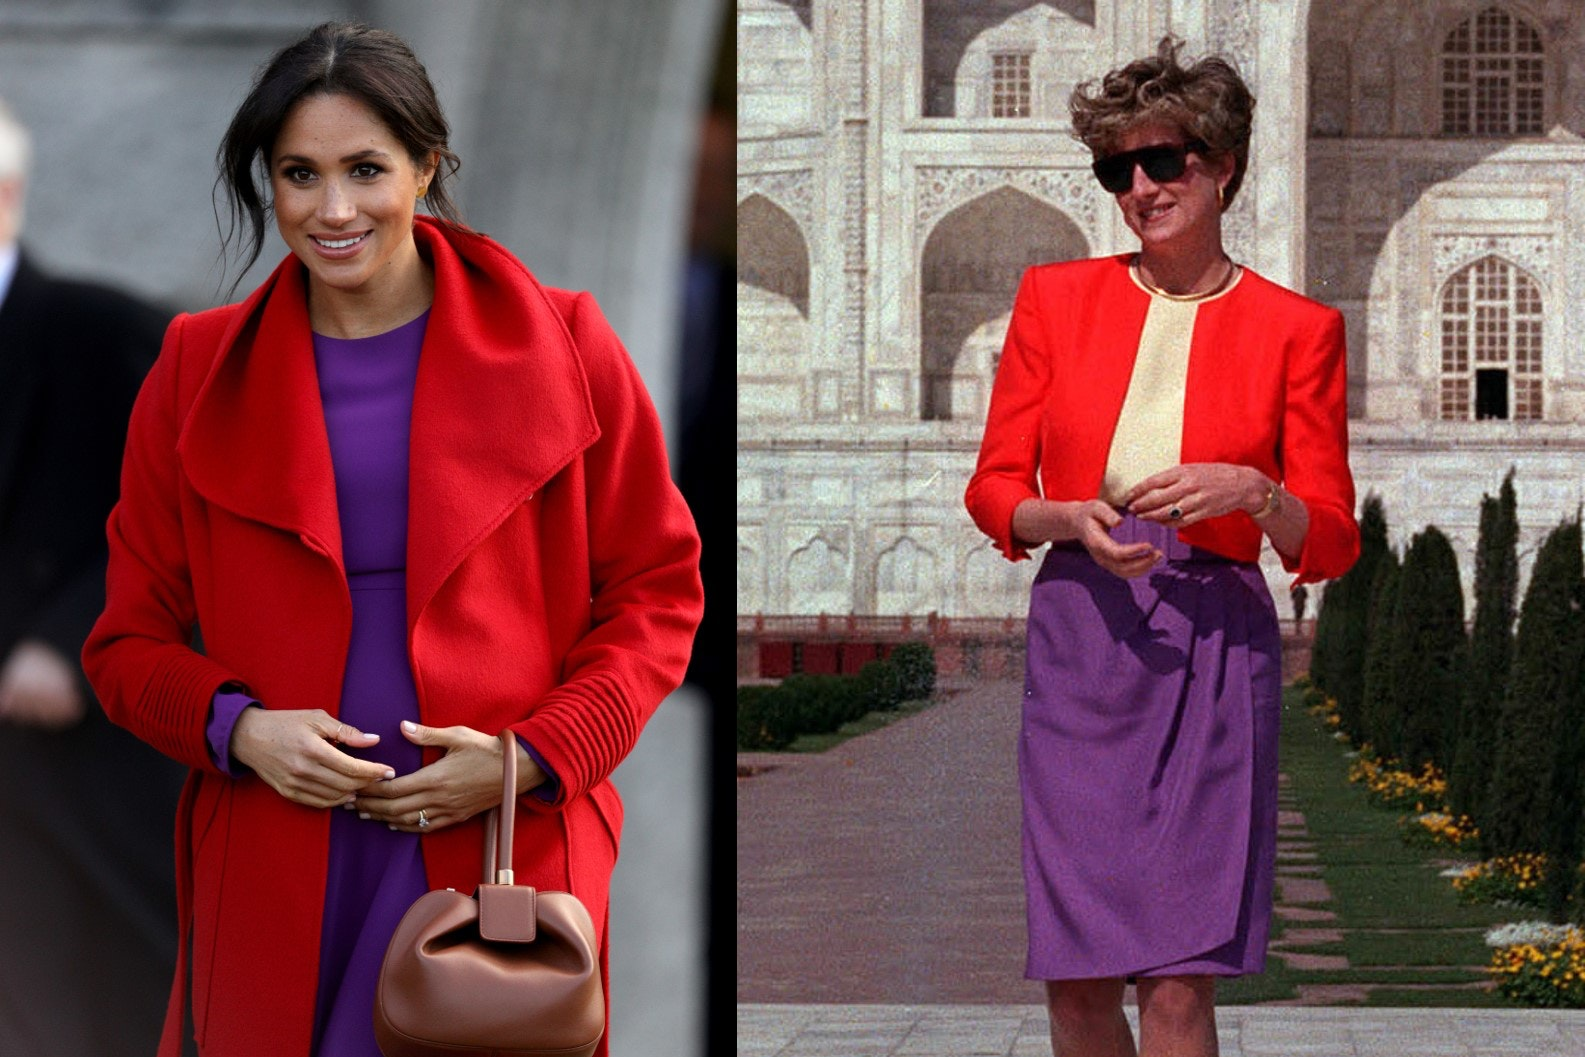 The Duchess of Sussex and the Princess of Wales in similar colours